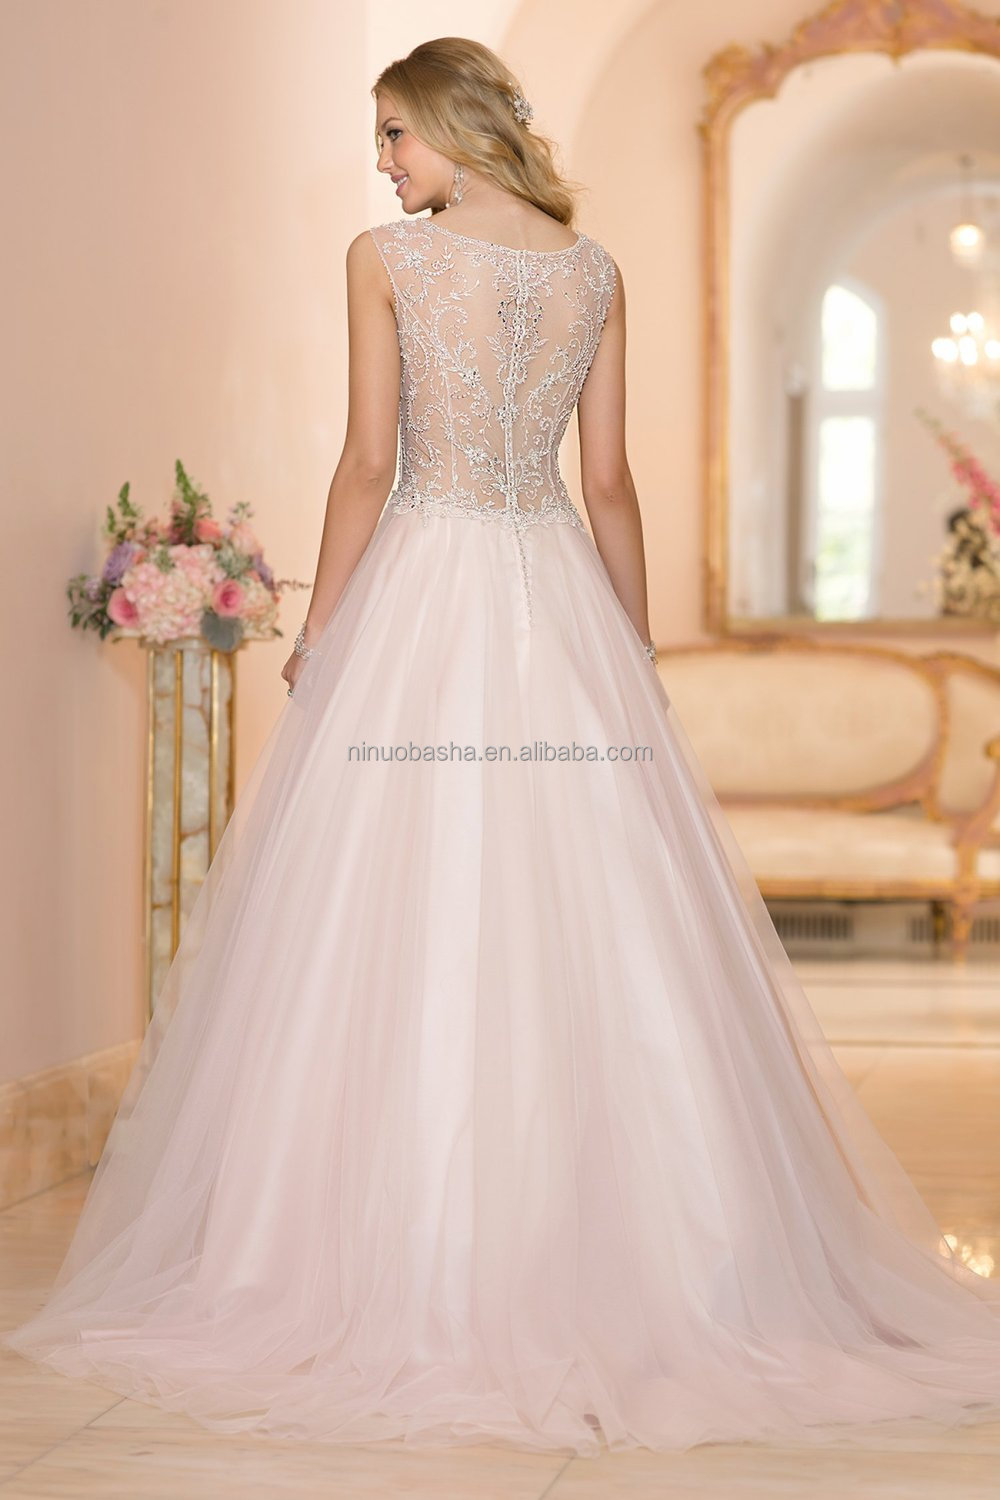 Latest Ball Gown Wedding Dress 2015 V Neck Cap Sleeve See Through Zipper Back Beaded